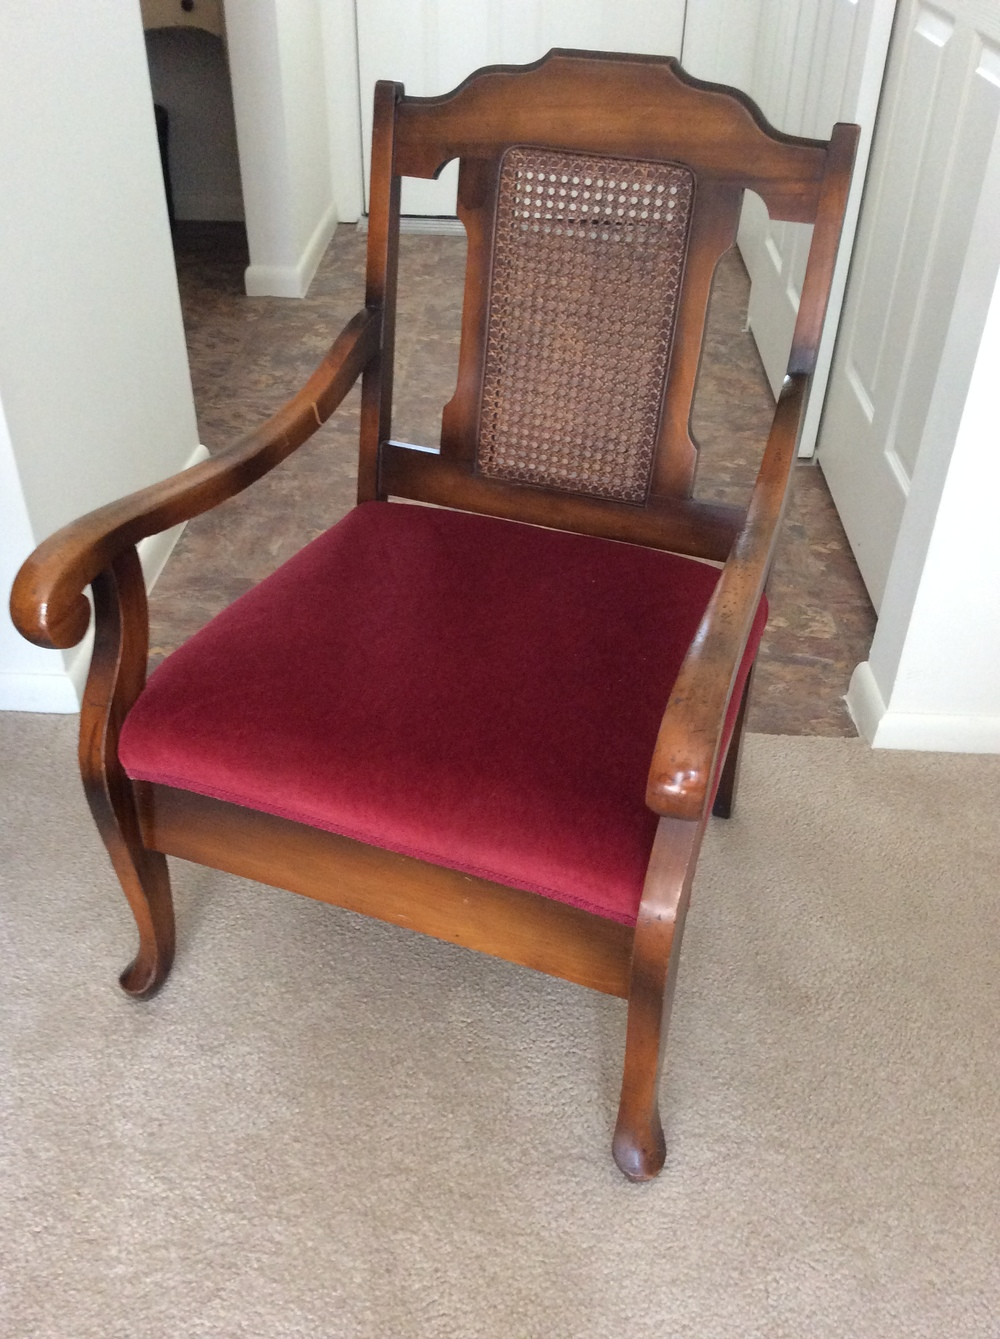 Cane back mother/daughter chairs (one taller, one short),  red velvet seats, circa1920's.  $200 estimated value for pair